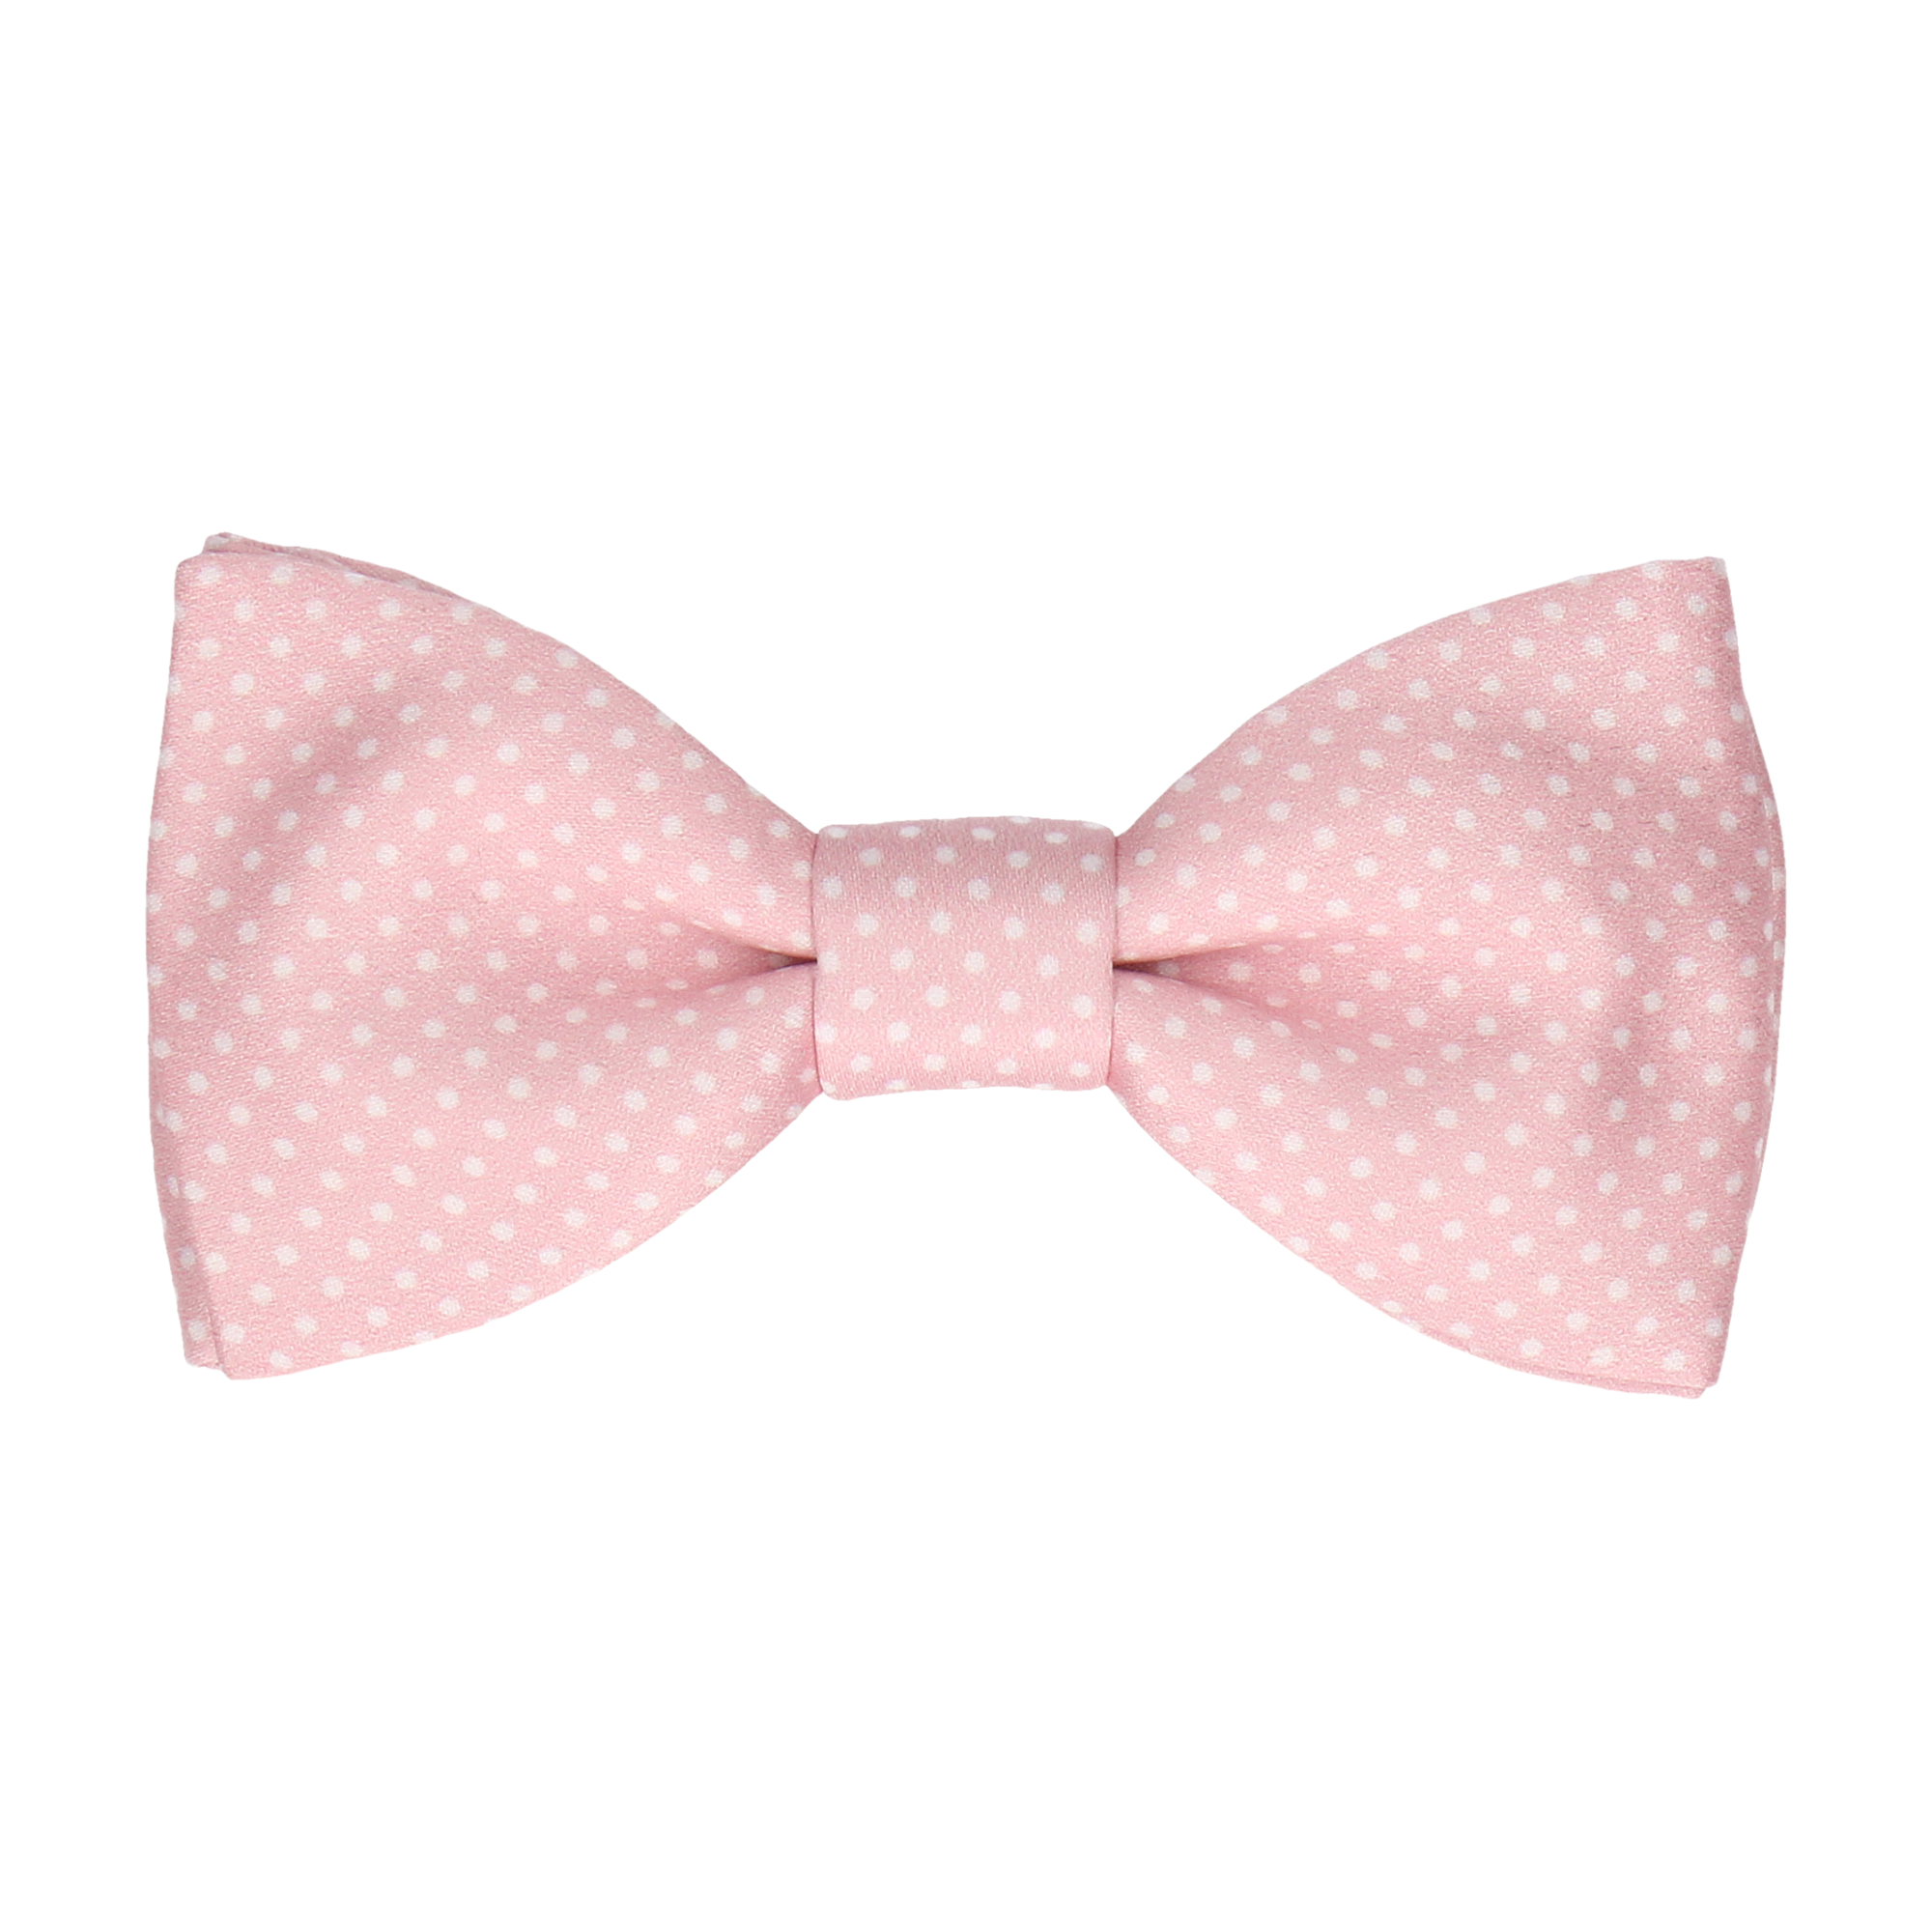 Dickinson Dots Cherry Blossom Bow Tie